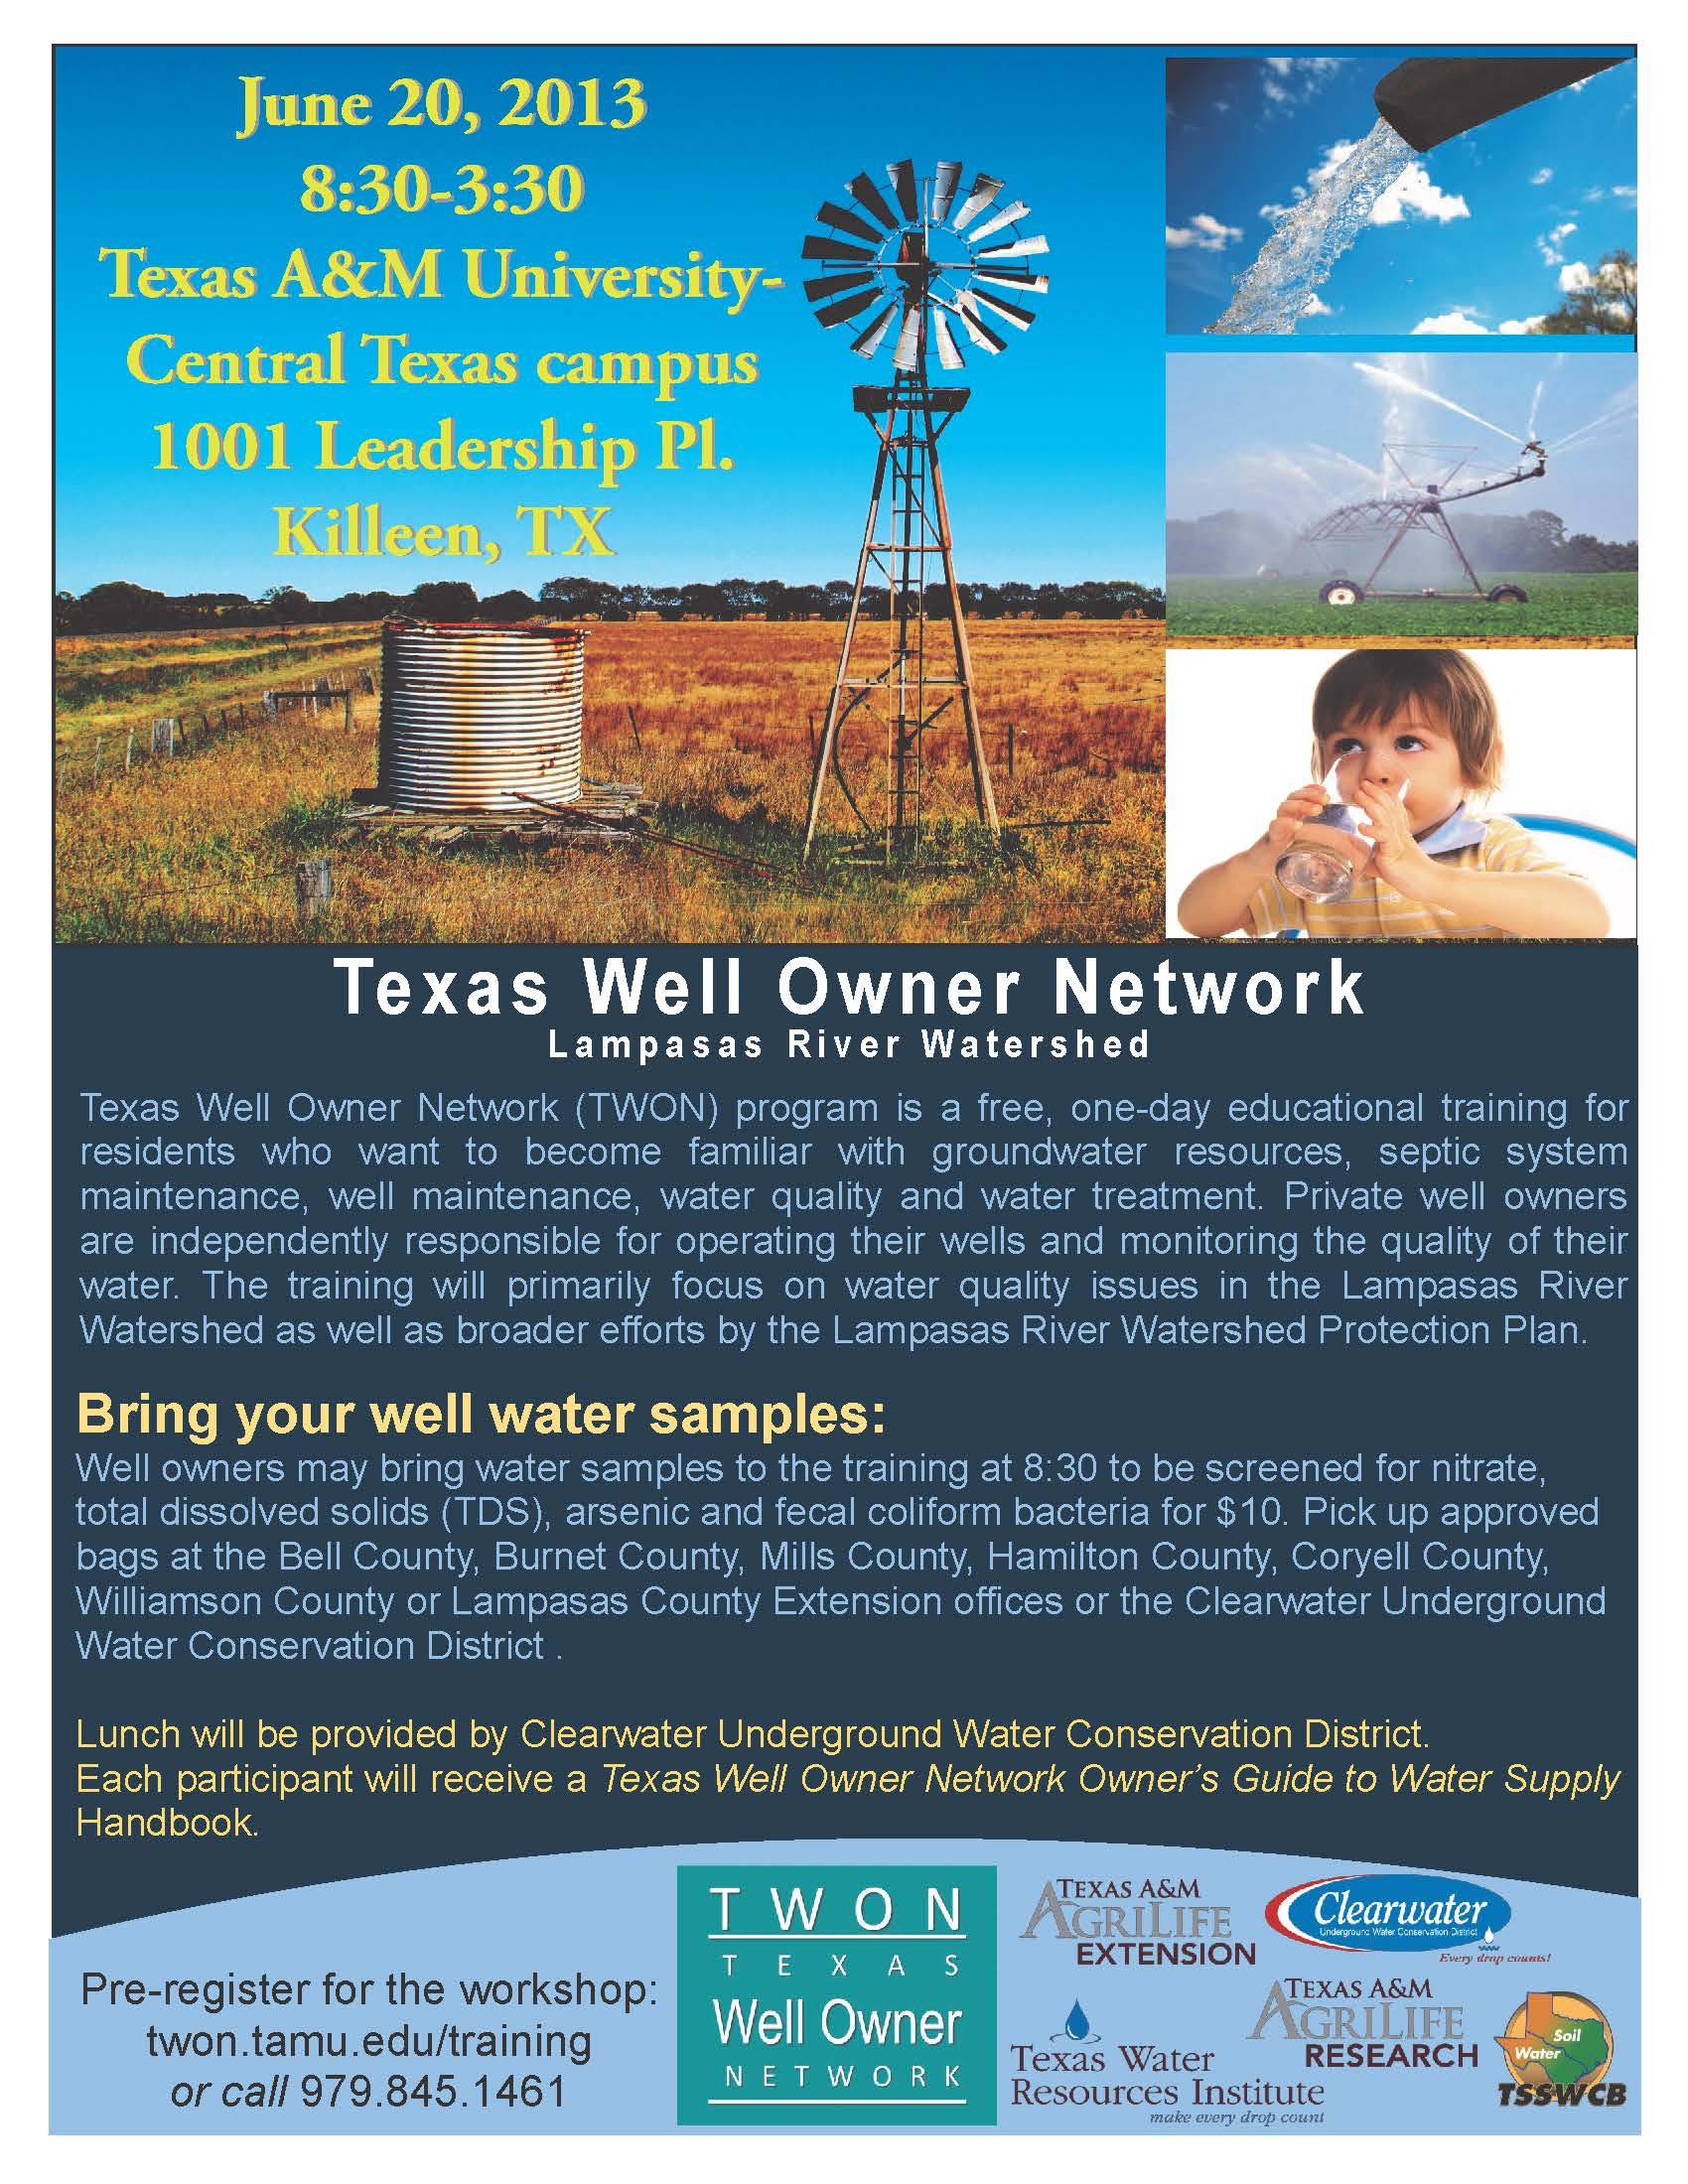 Texas Well Owner Network